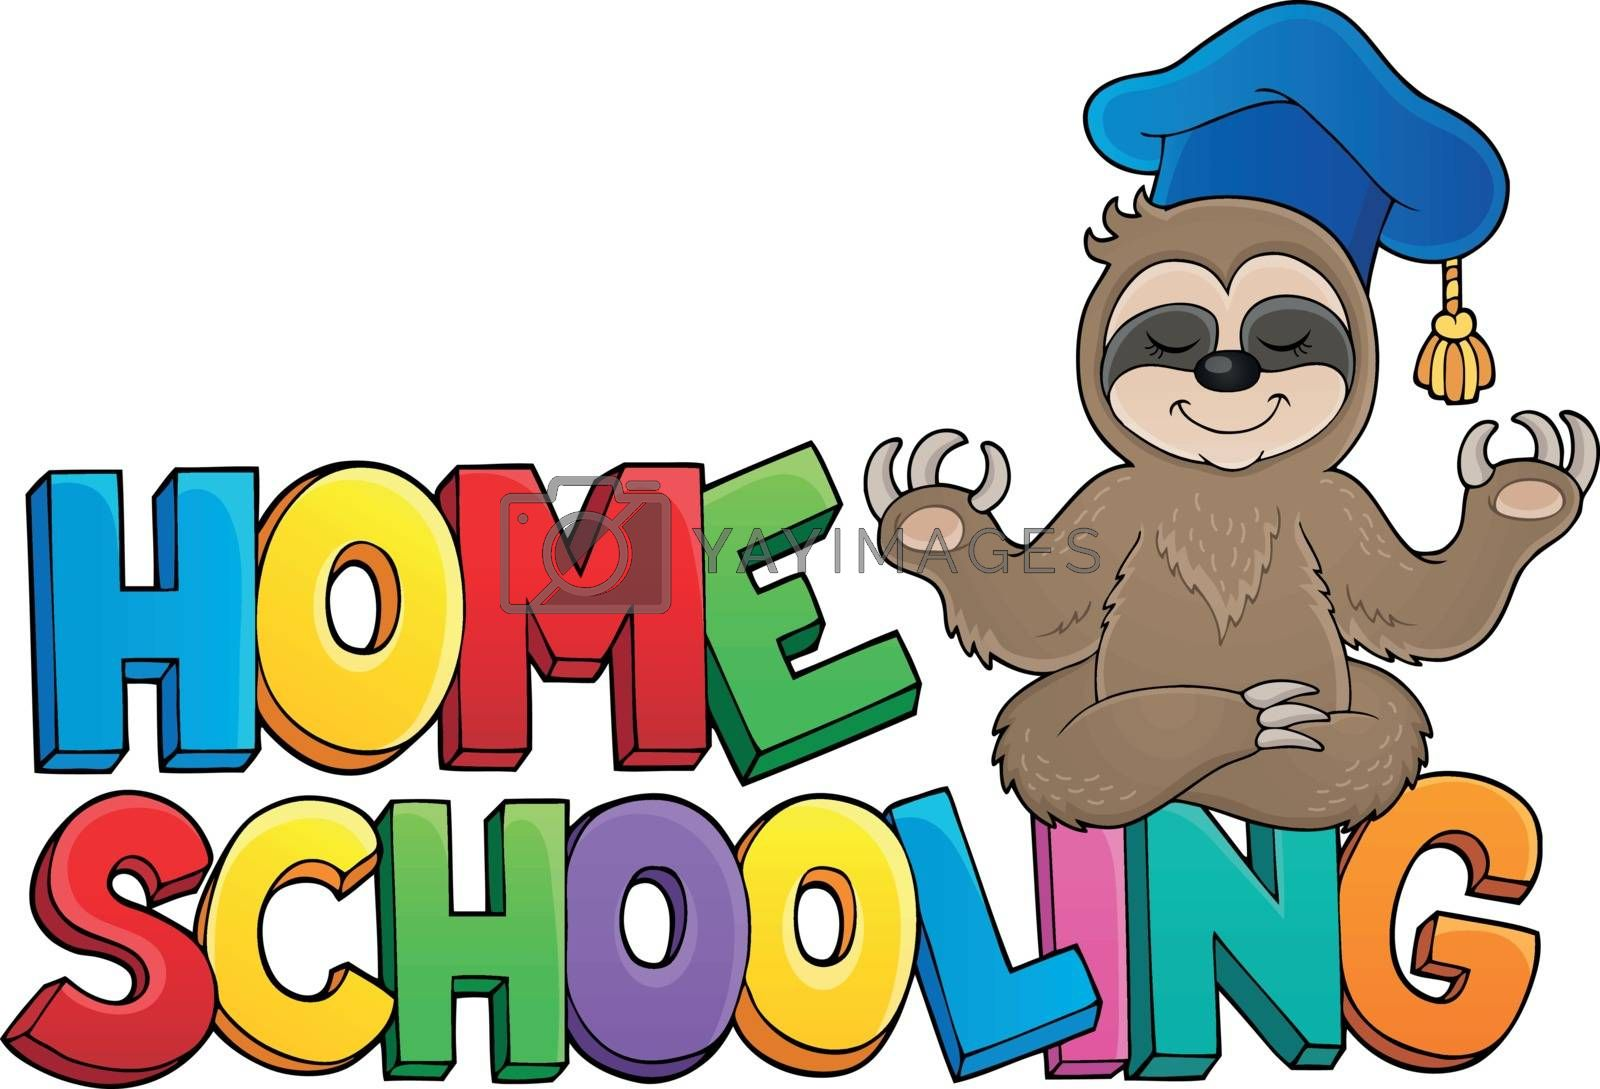 Home schooling theme sign 4 - eps10 vector illustration.